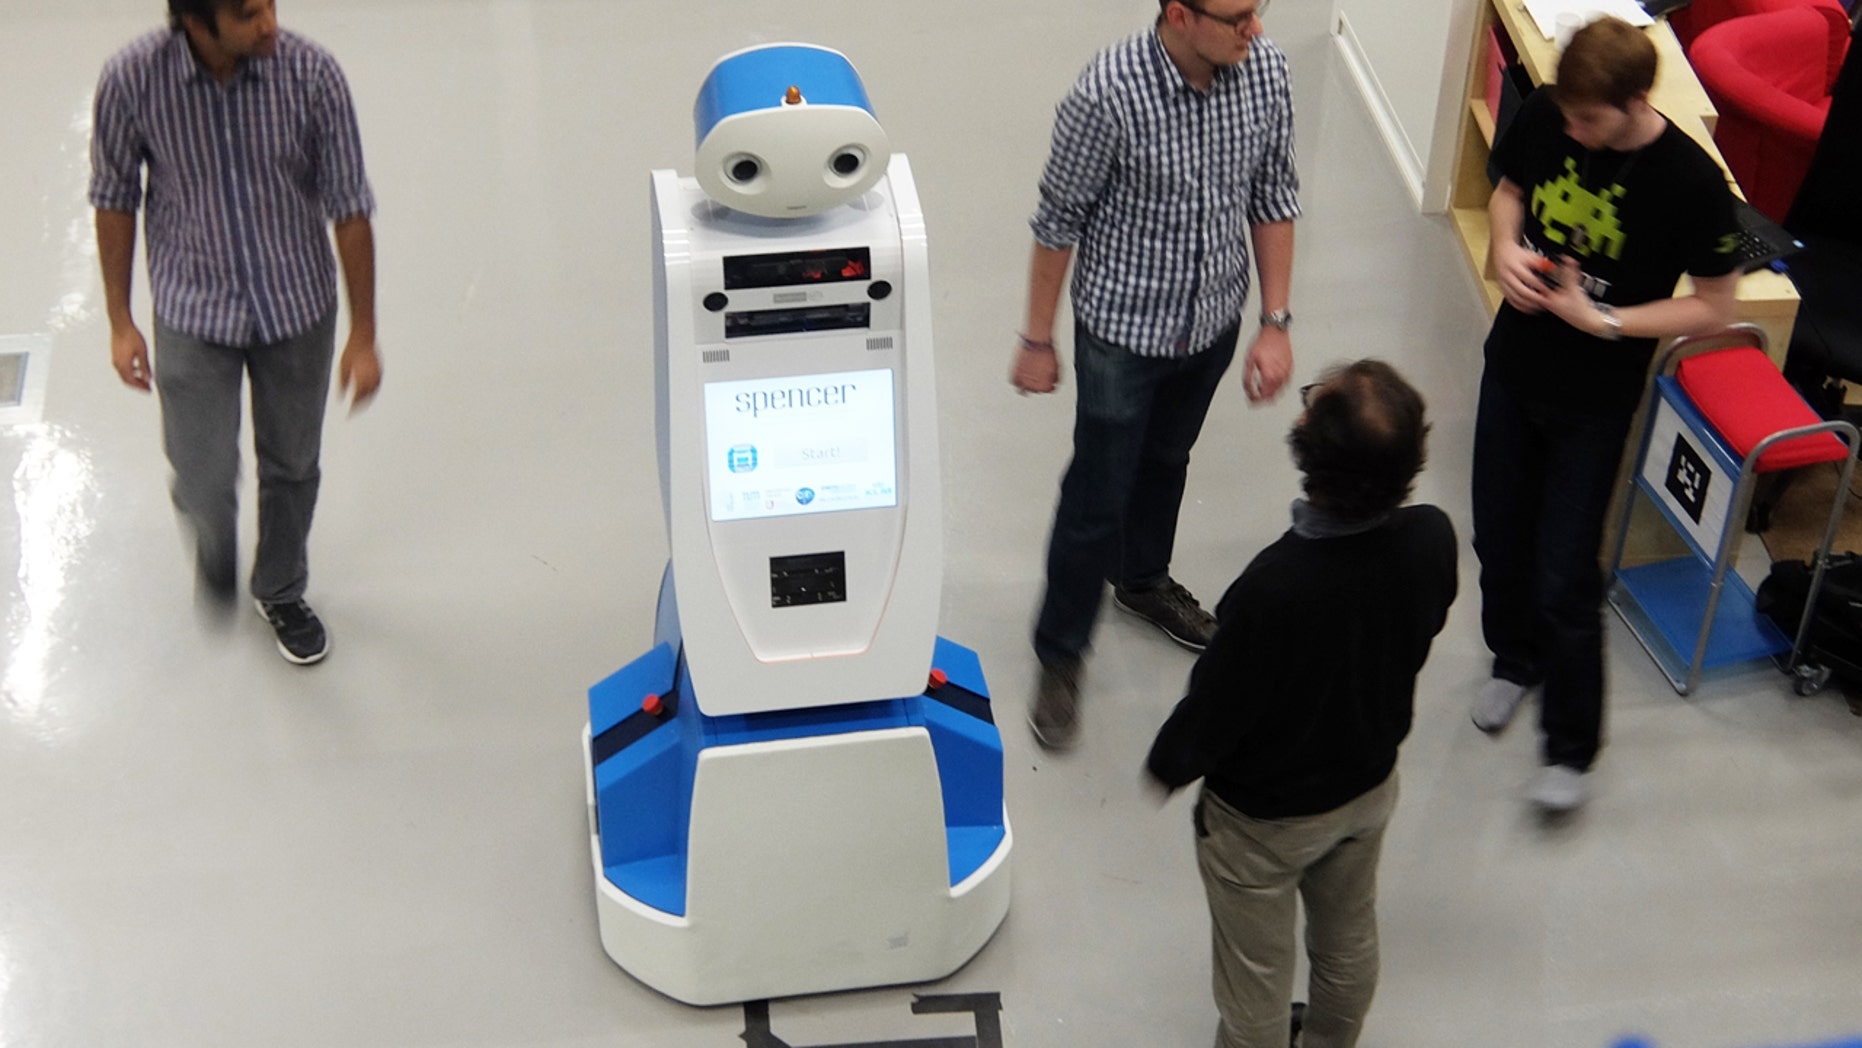 Spencer the robot helps airline passengers navigate through busy terminals.